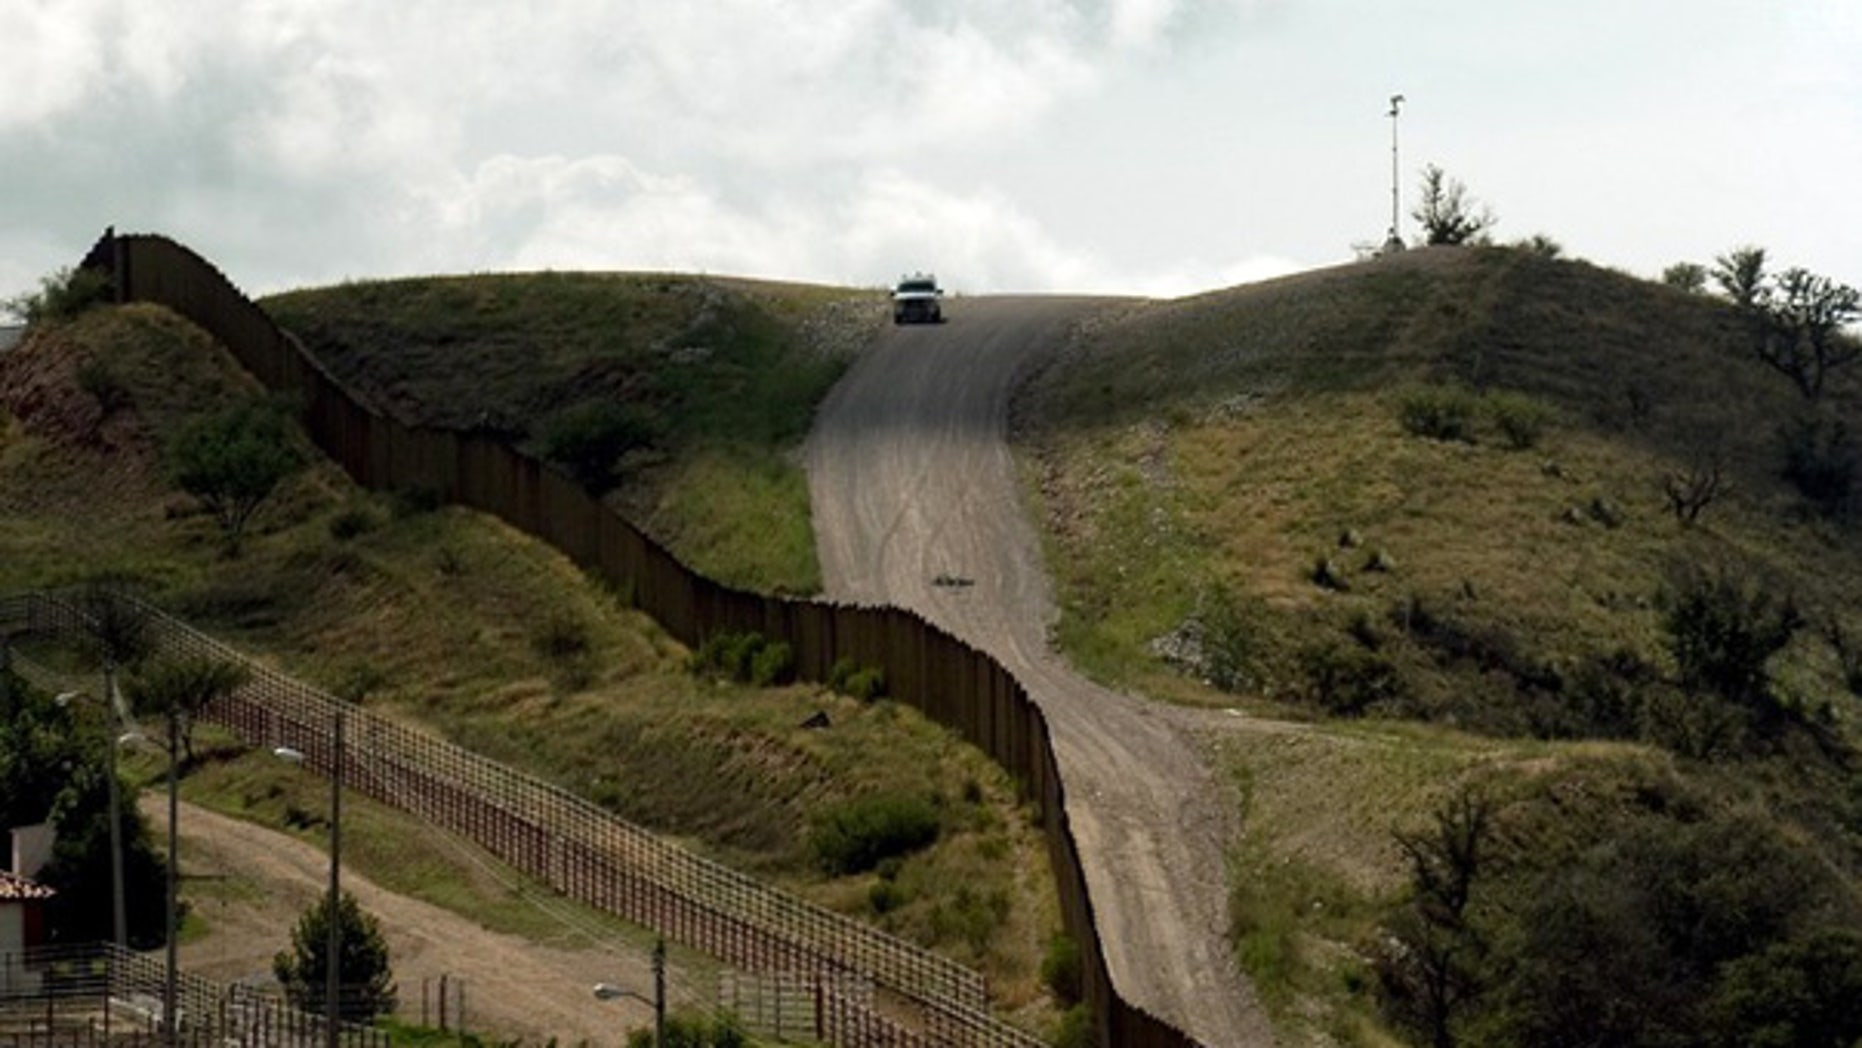 July 28: A U.S. Border Patrol vehicle drives along the fence separating the U.S. from Mexico, near Nogales, Sonora, Mexico.